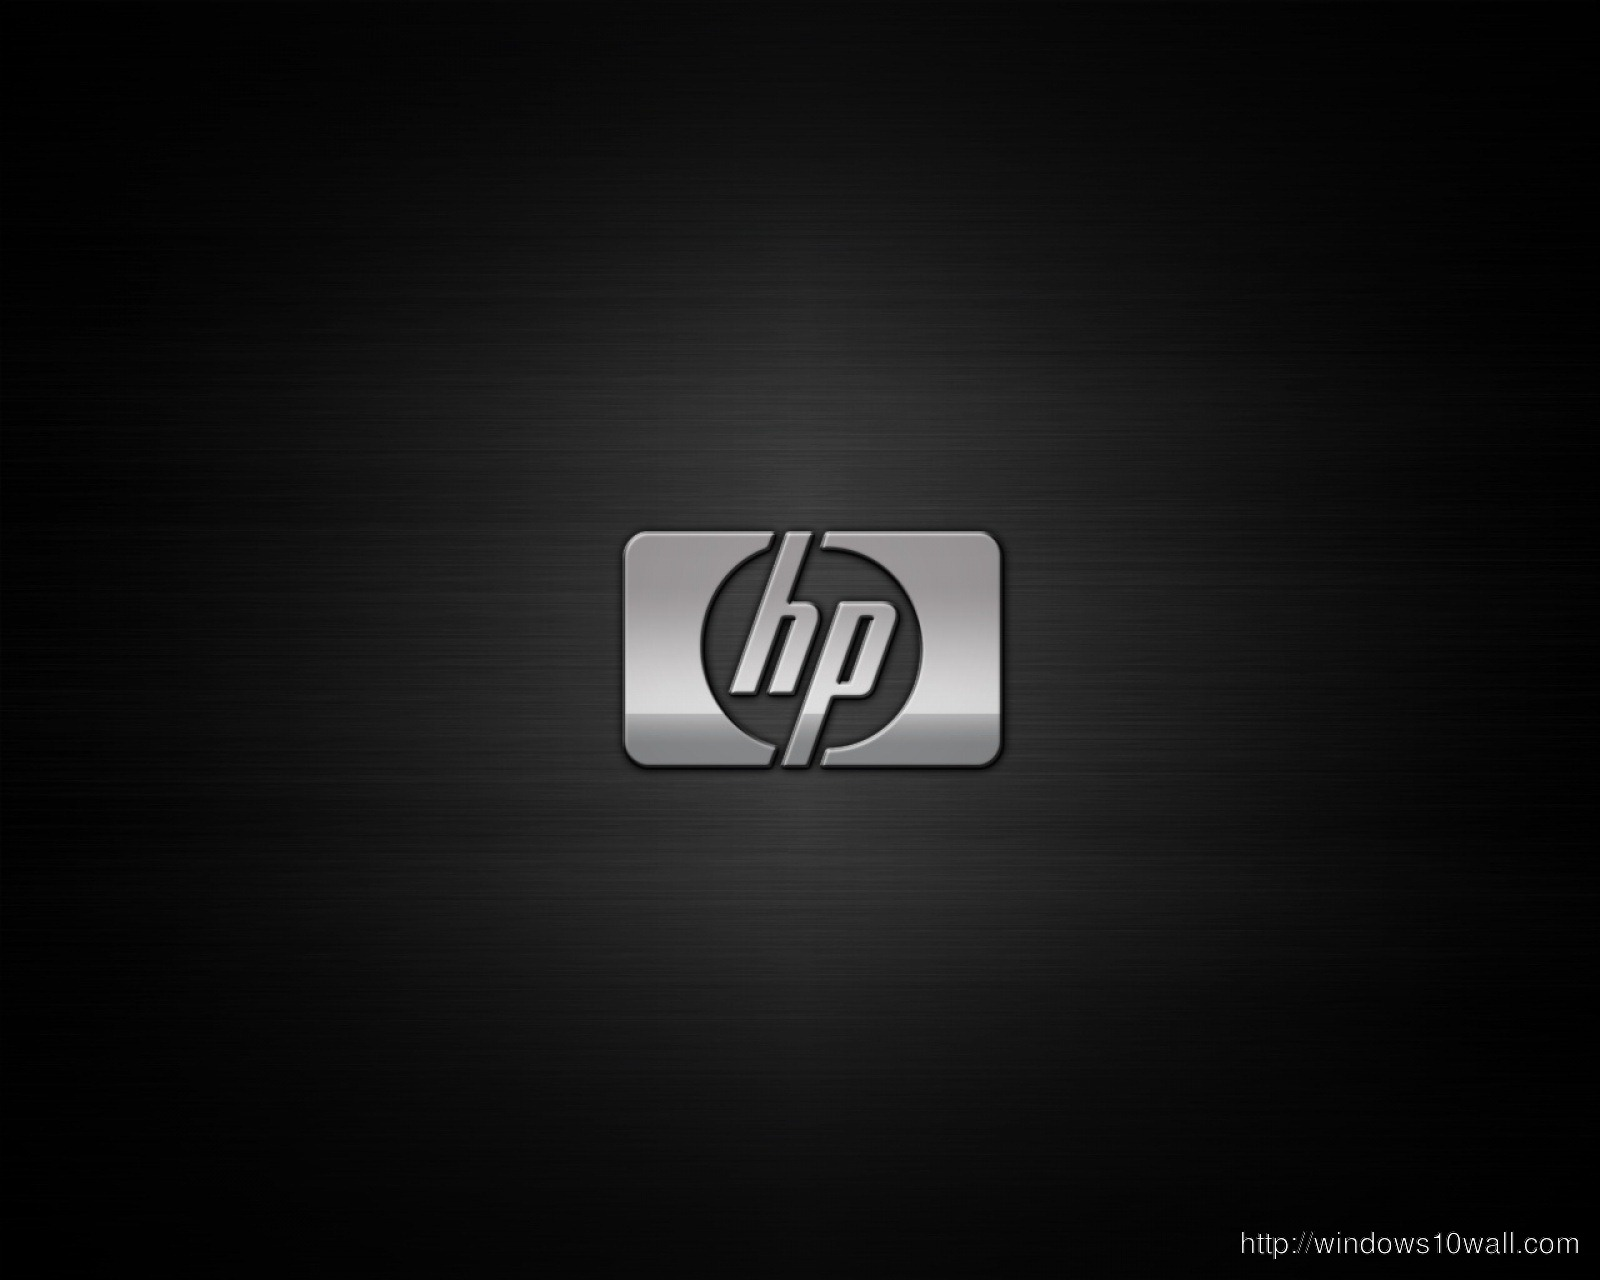 HP In Black Background Wallpaper New Wallpaper HP In Black Background 1600x1280